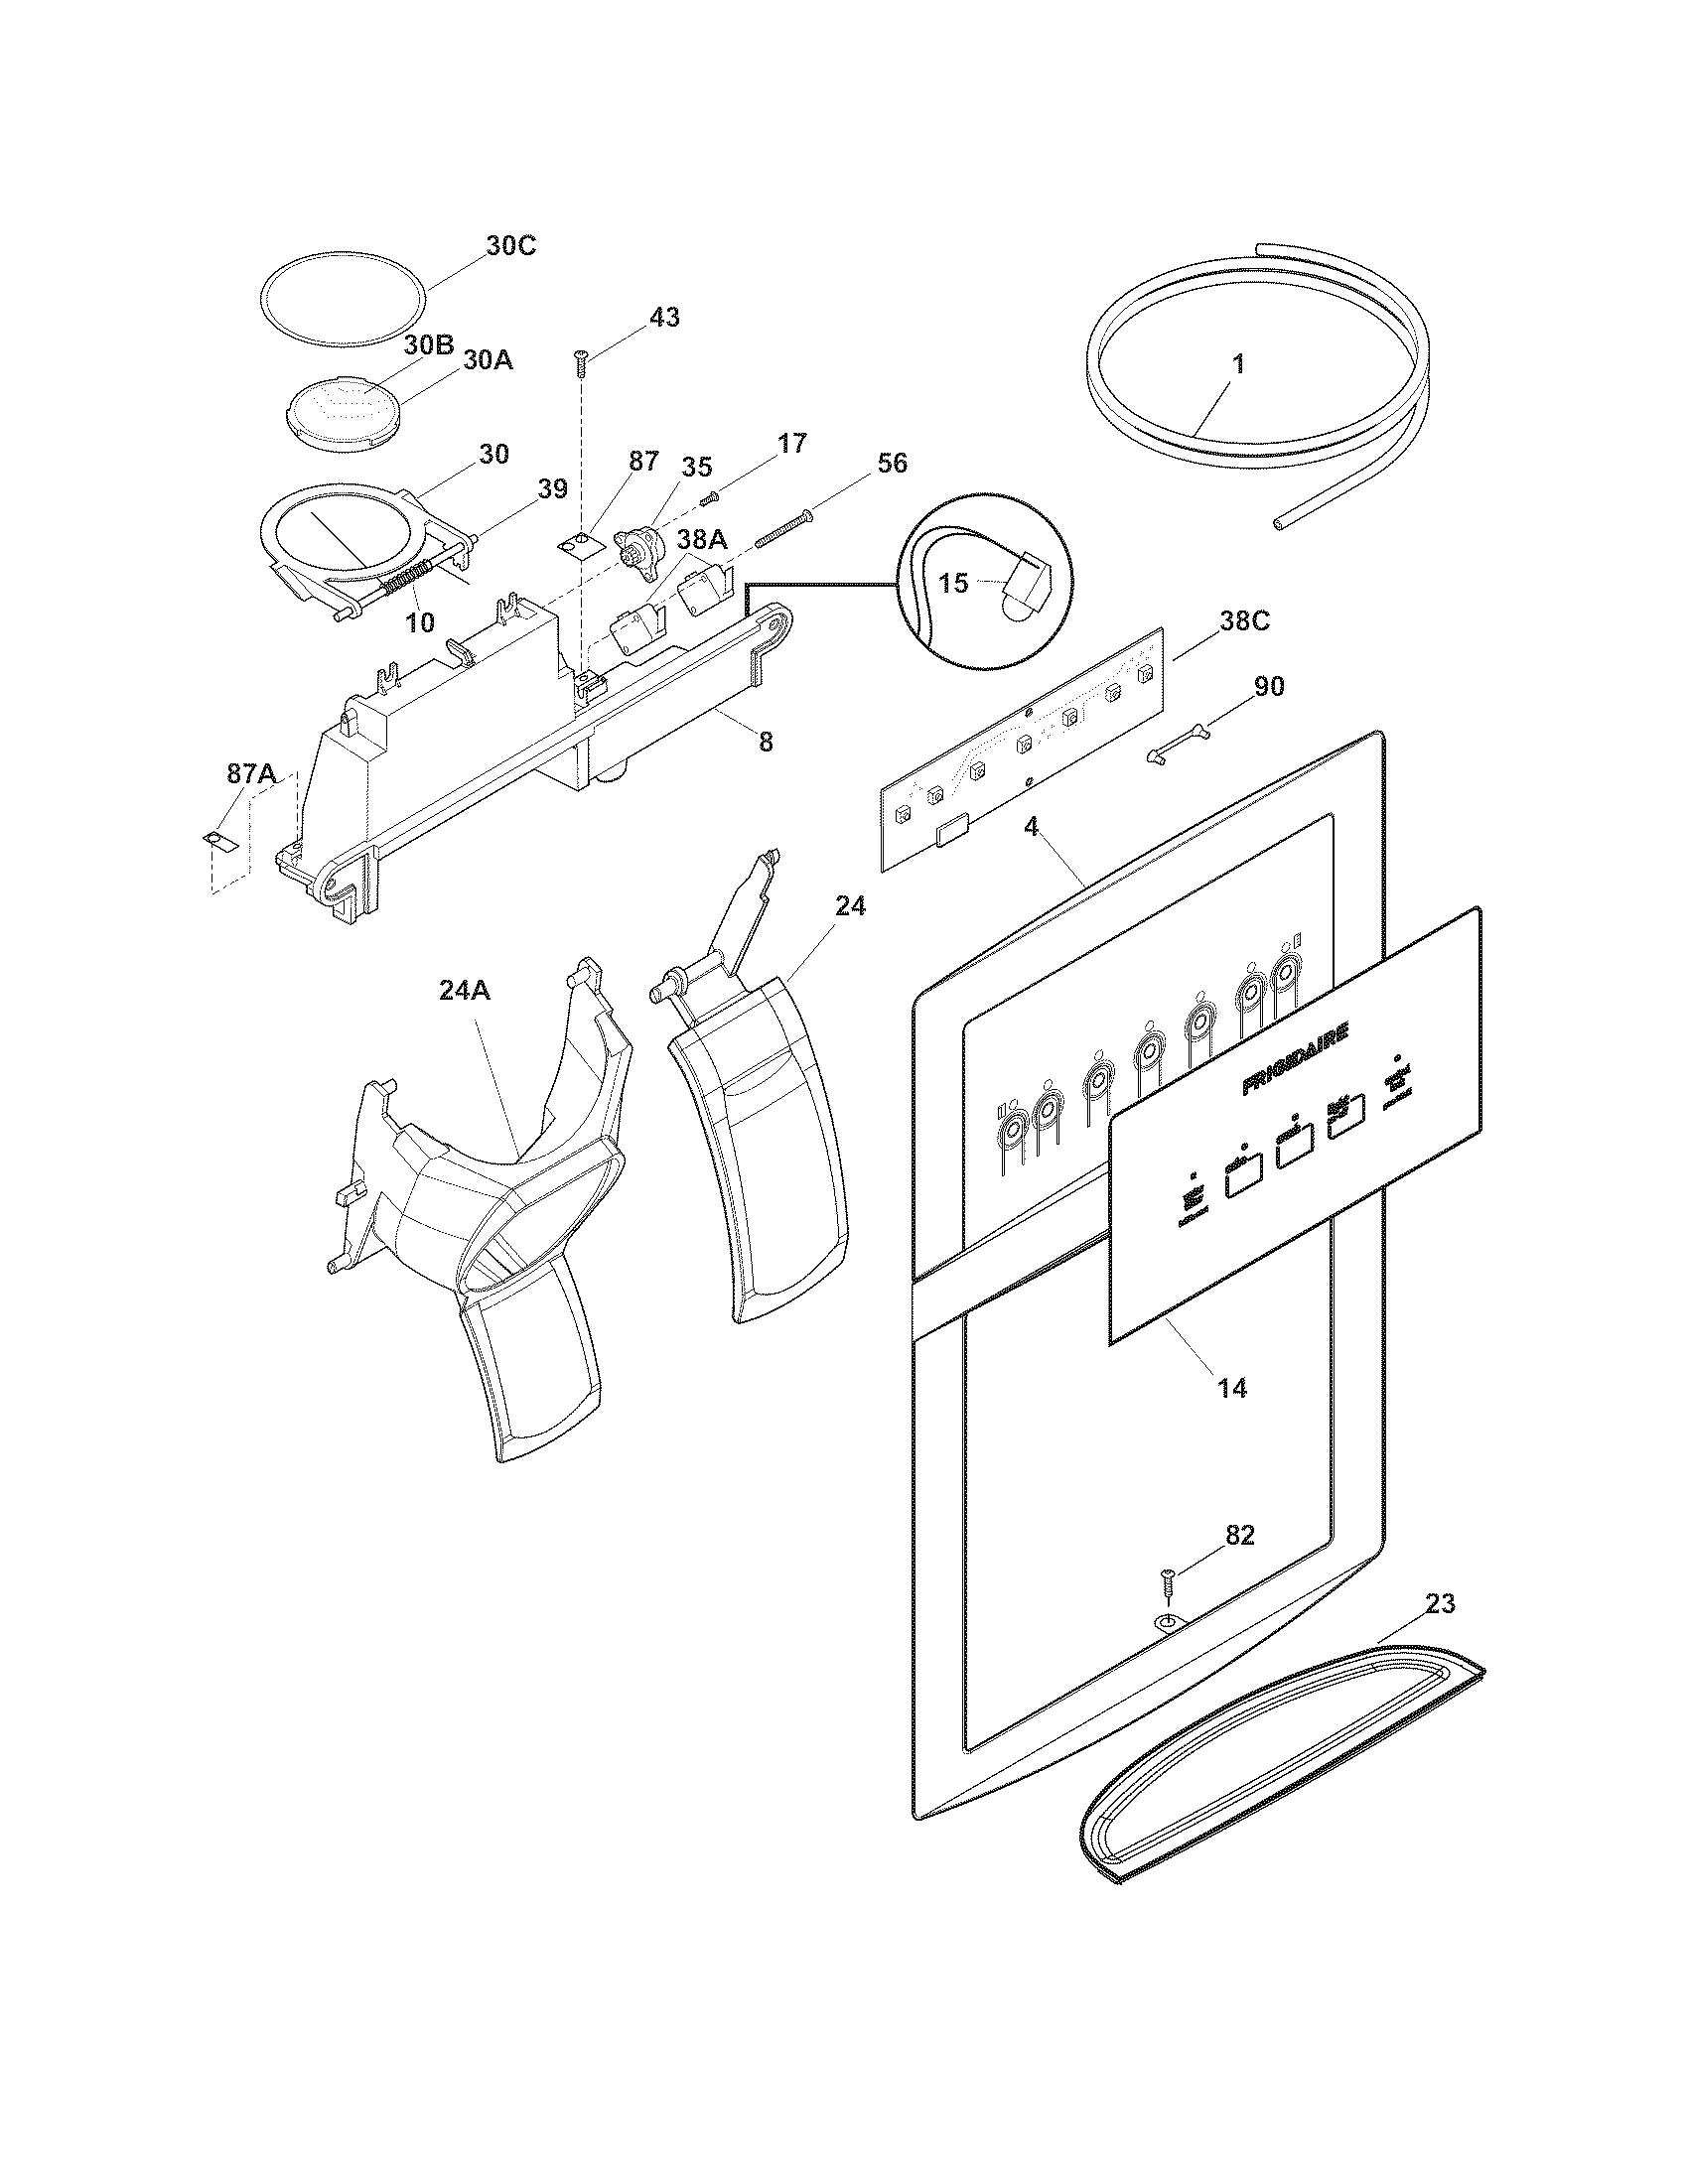 Frigidaire Ice Maker Parts Diagram Frigidaire Model Ffhs2622mq3 Side by Side Refrigerator Genuine Parts Of Frigidaire Ice Maker Parts Diagram